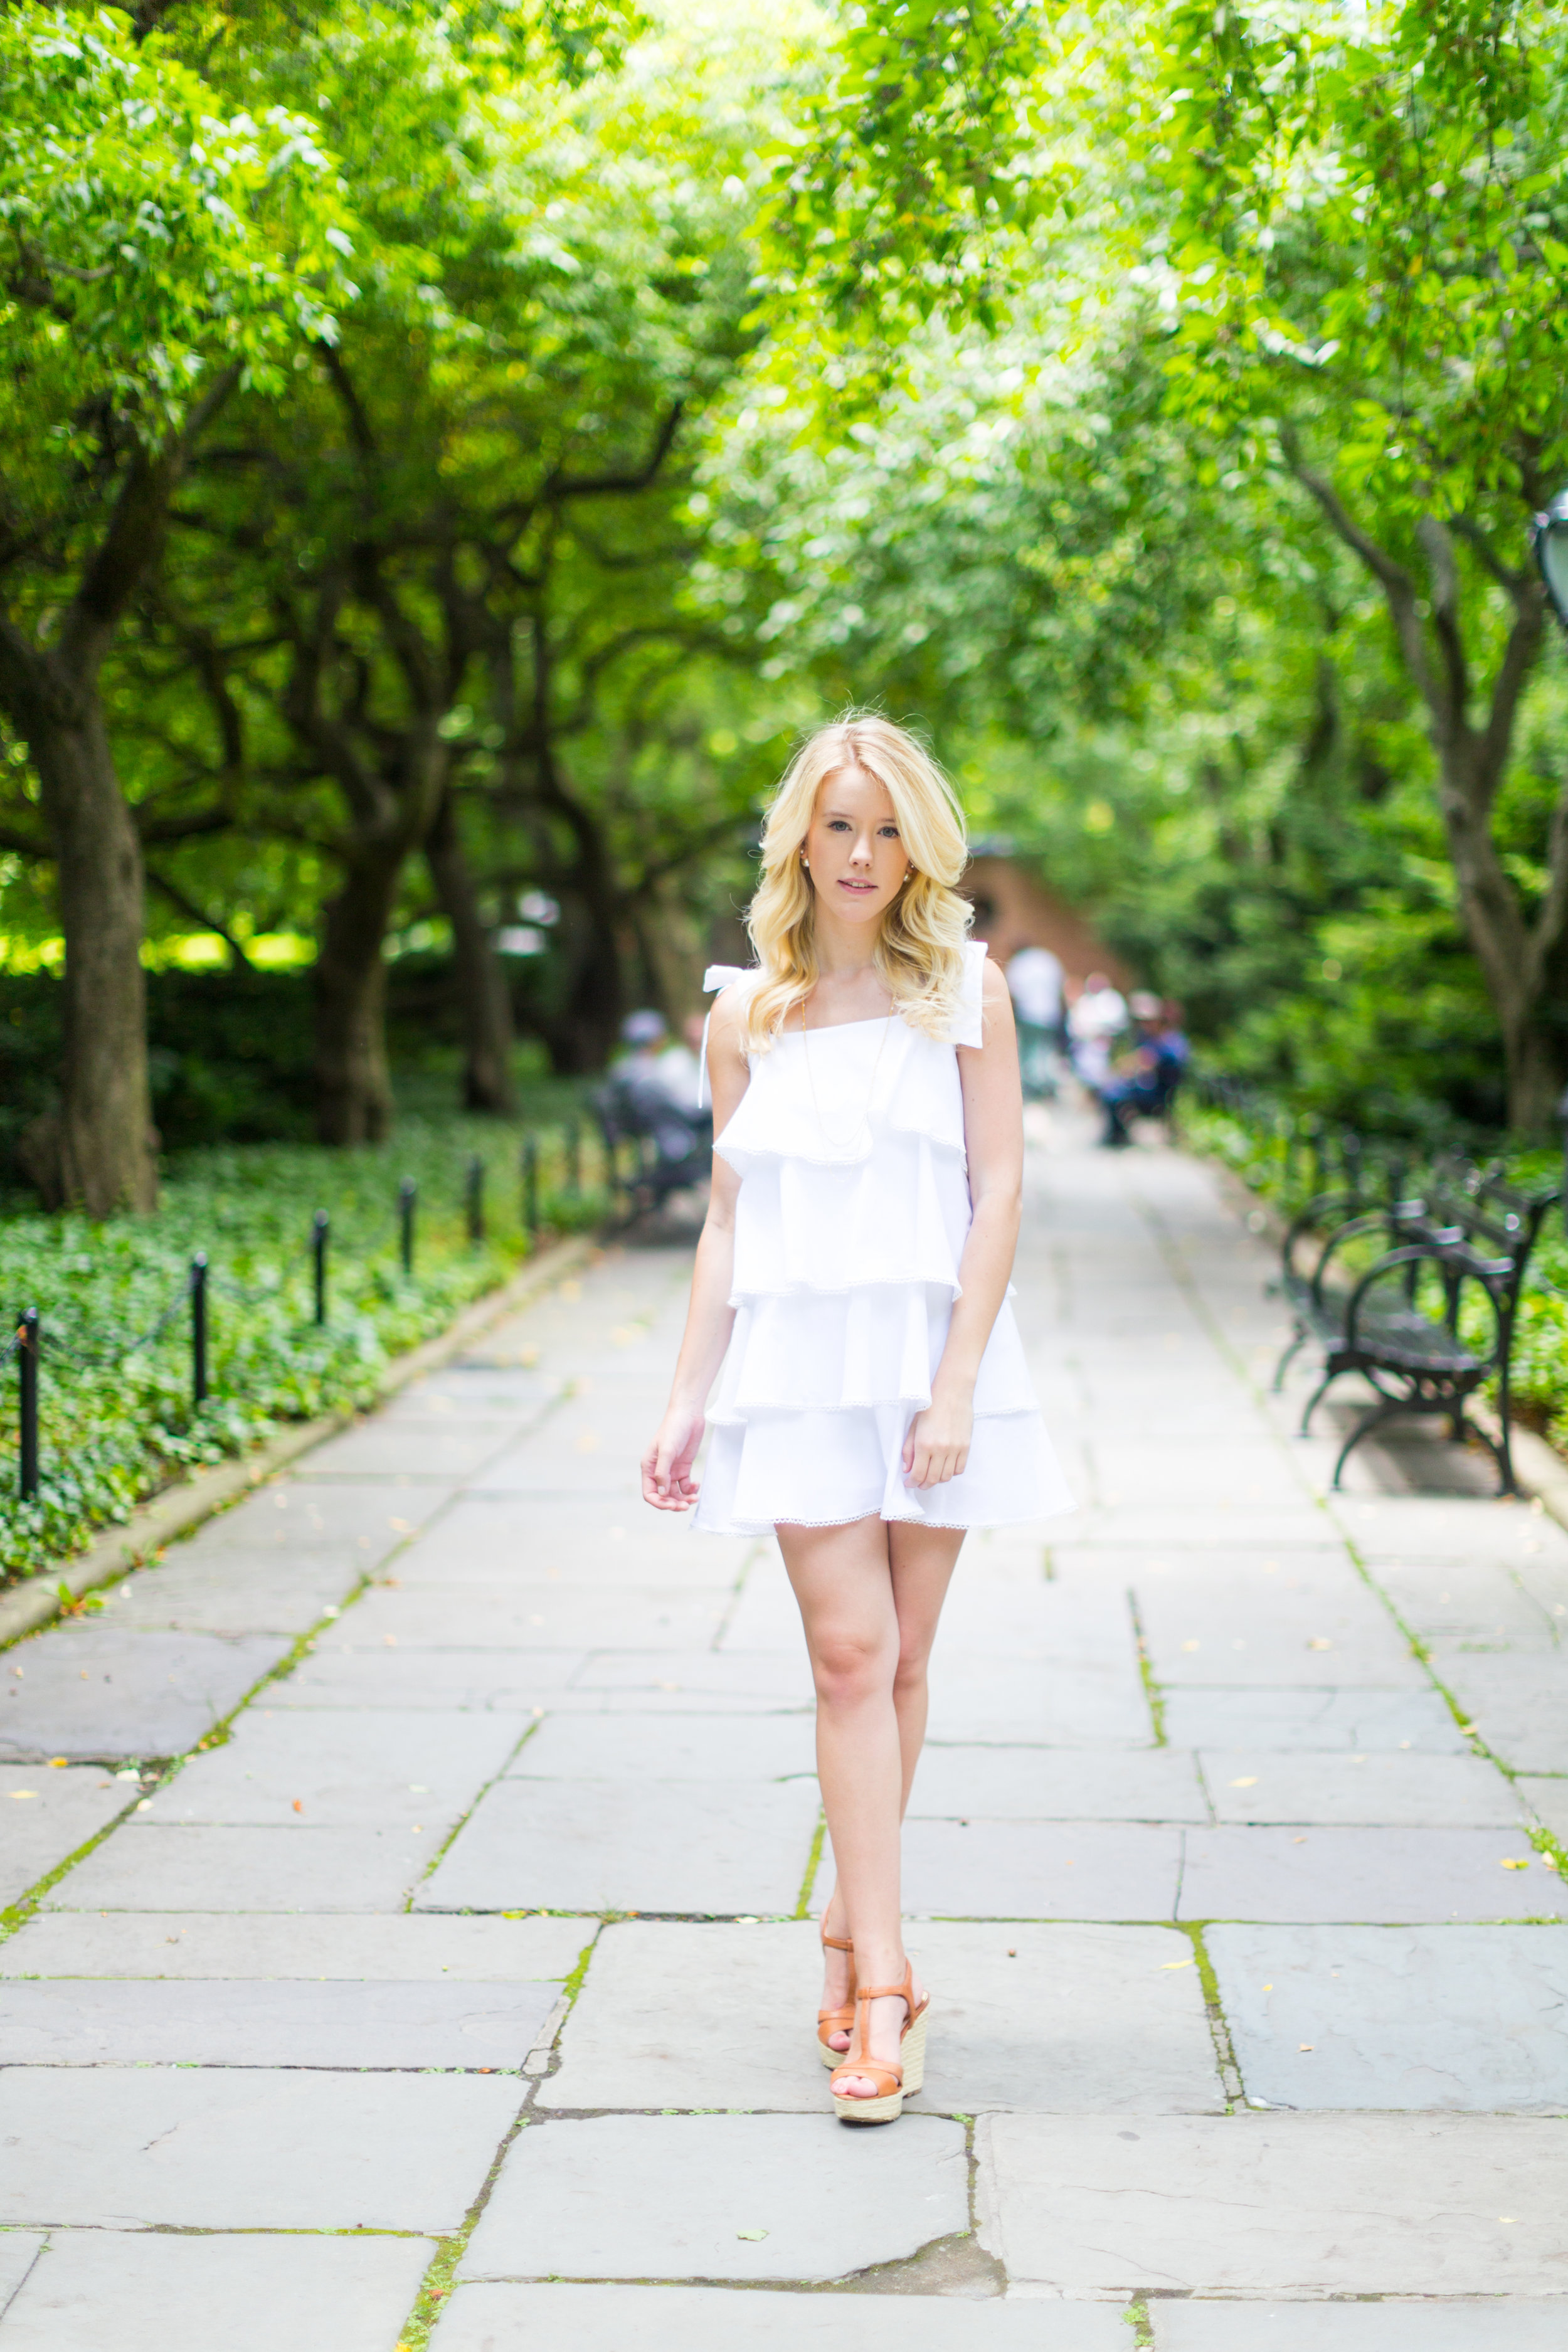 NYC Central Park Summer Fashion White Ruffled Dress-3.jpg